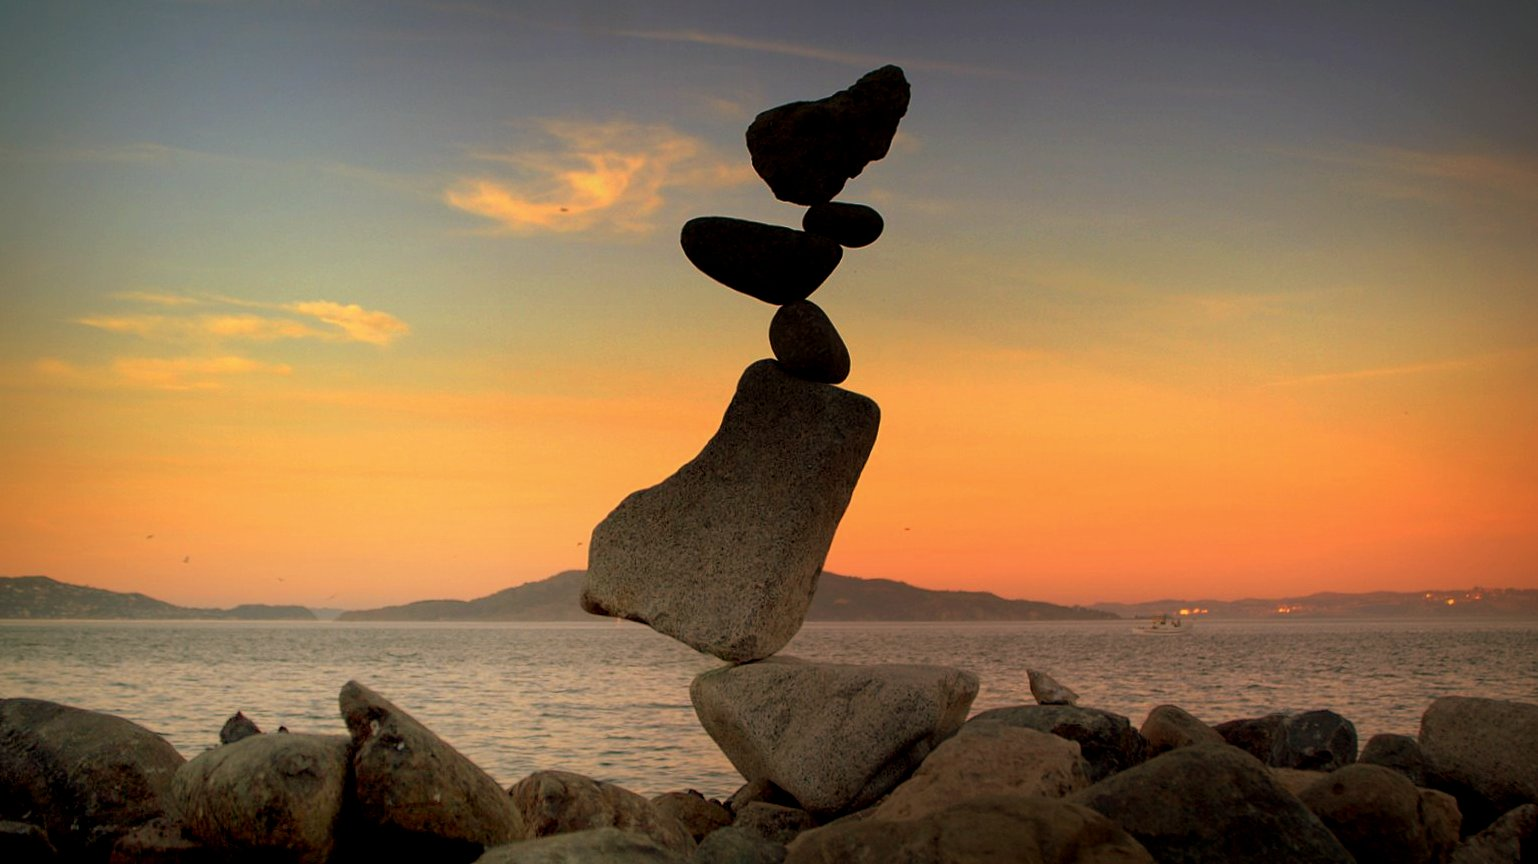 rock-balancing-michael-grab-05